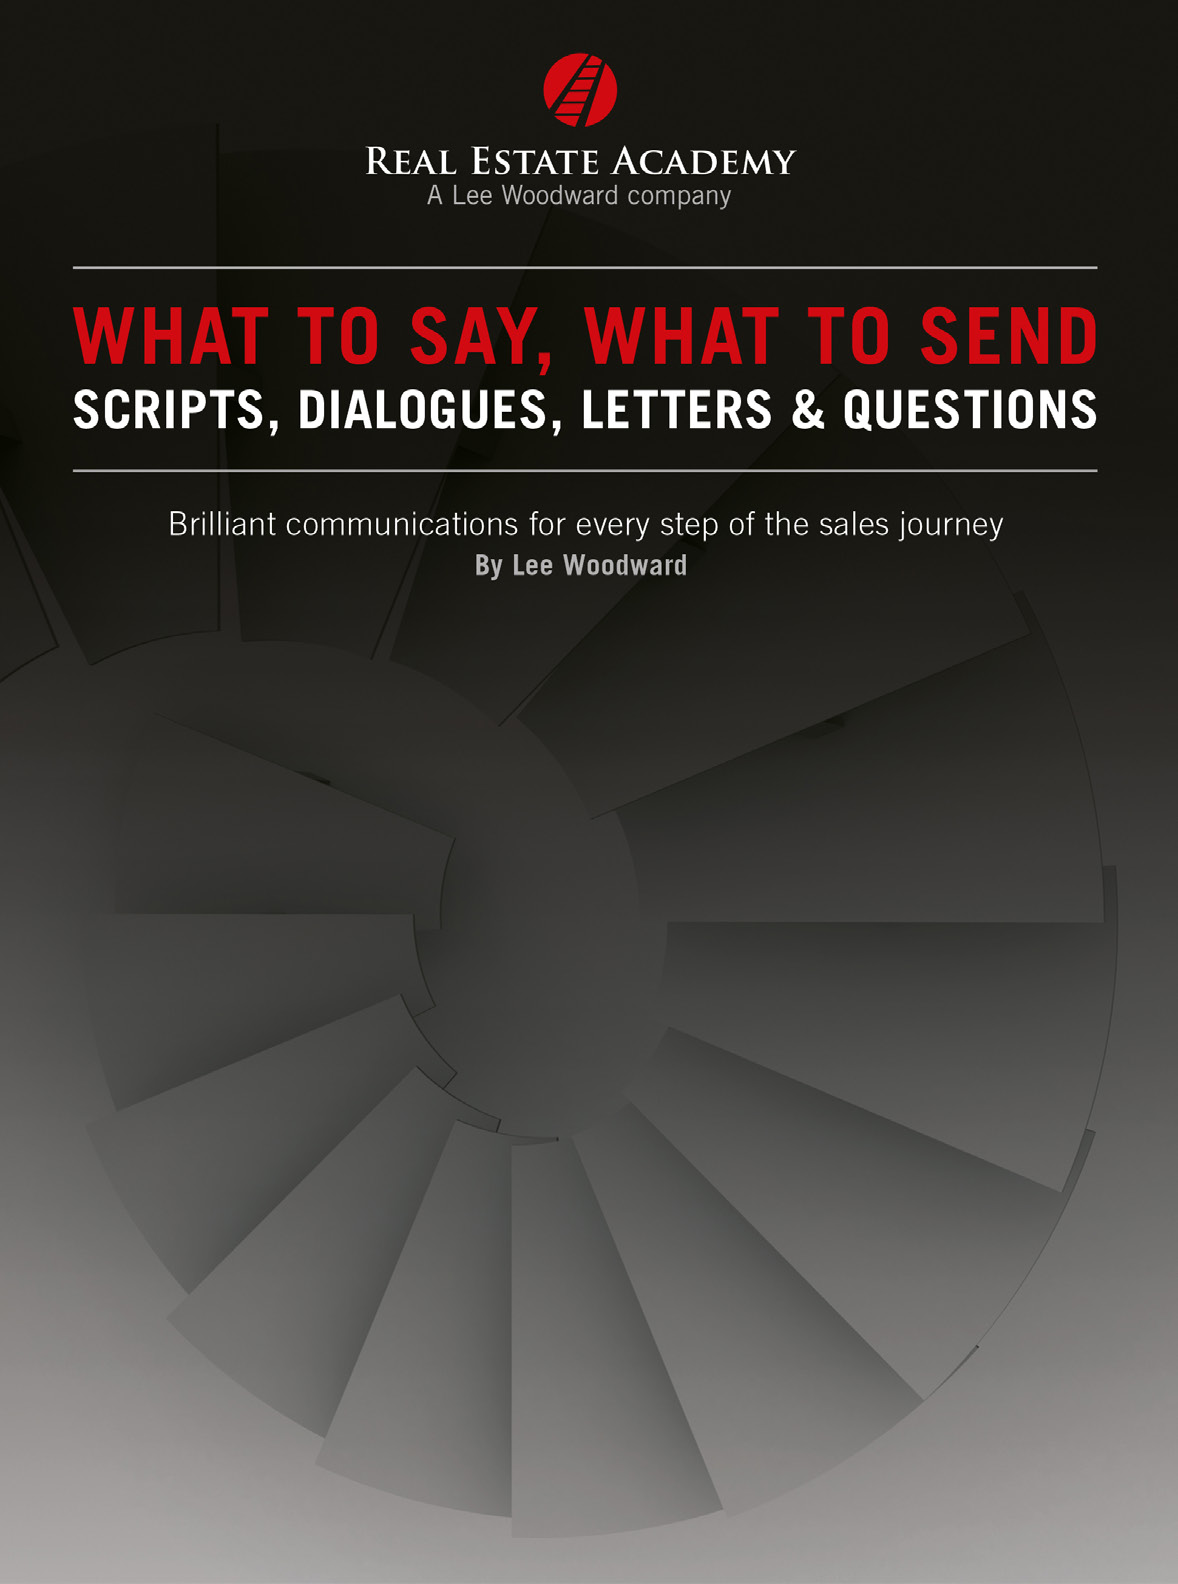 What to Say, What to Send – Scripts, Dialogues, Letters & Questions by Lee Woodward